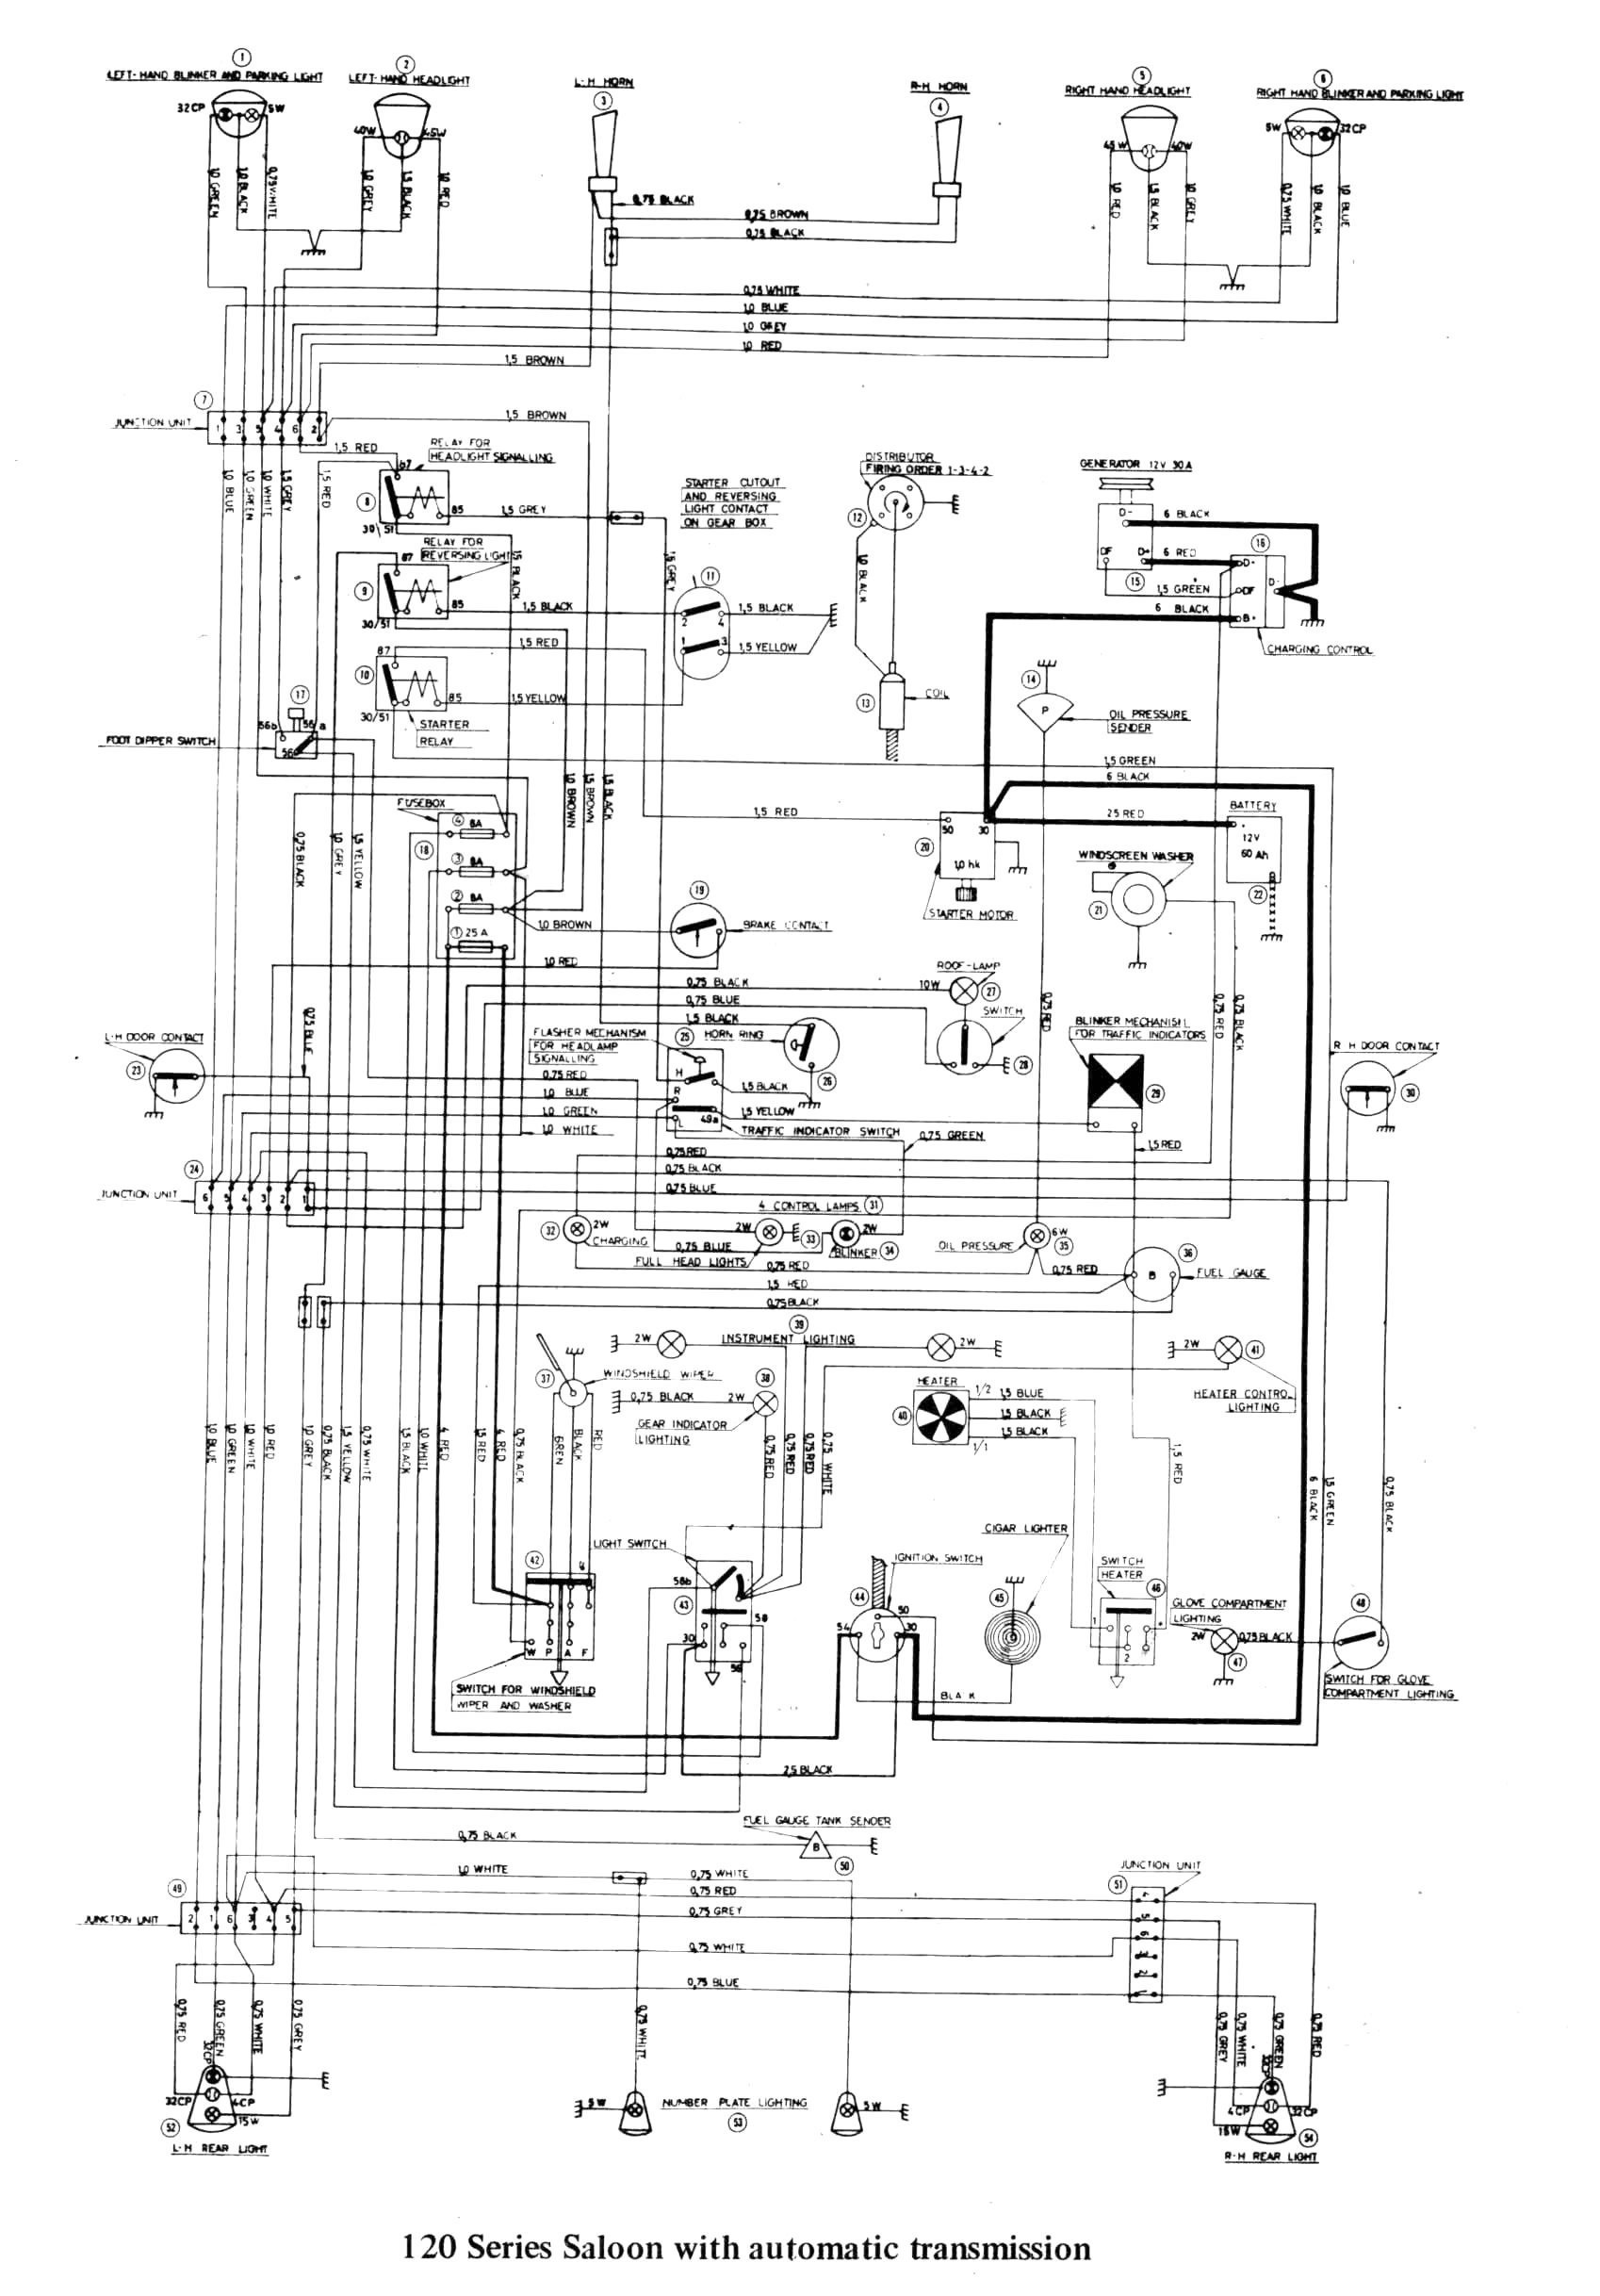 Club Car Wiring Diagram 36 Volt Club Car Golf Cart Wiring Diagram Awesome  48 Volt Club